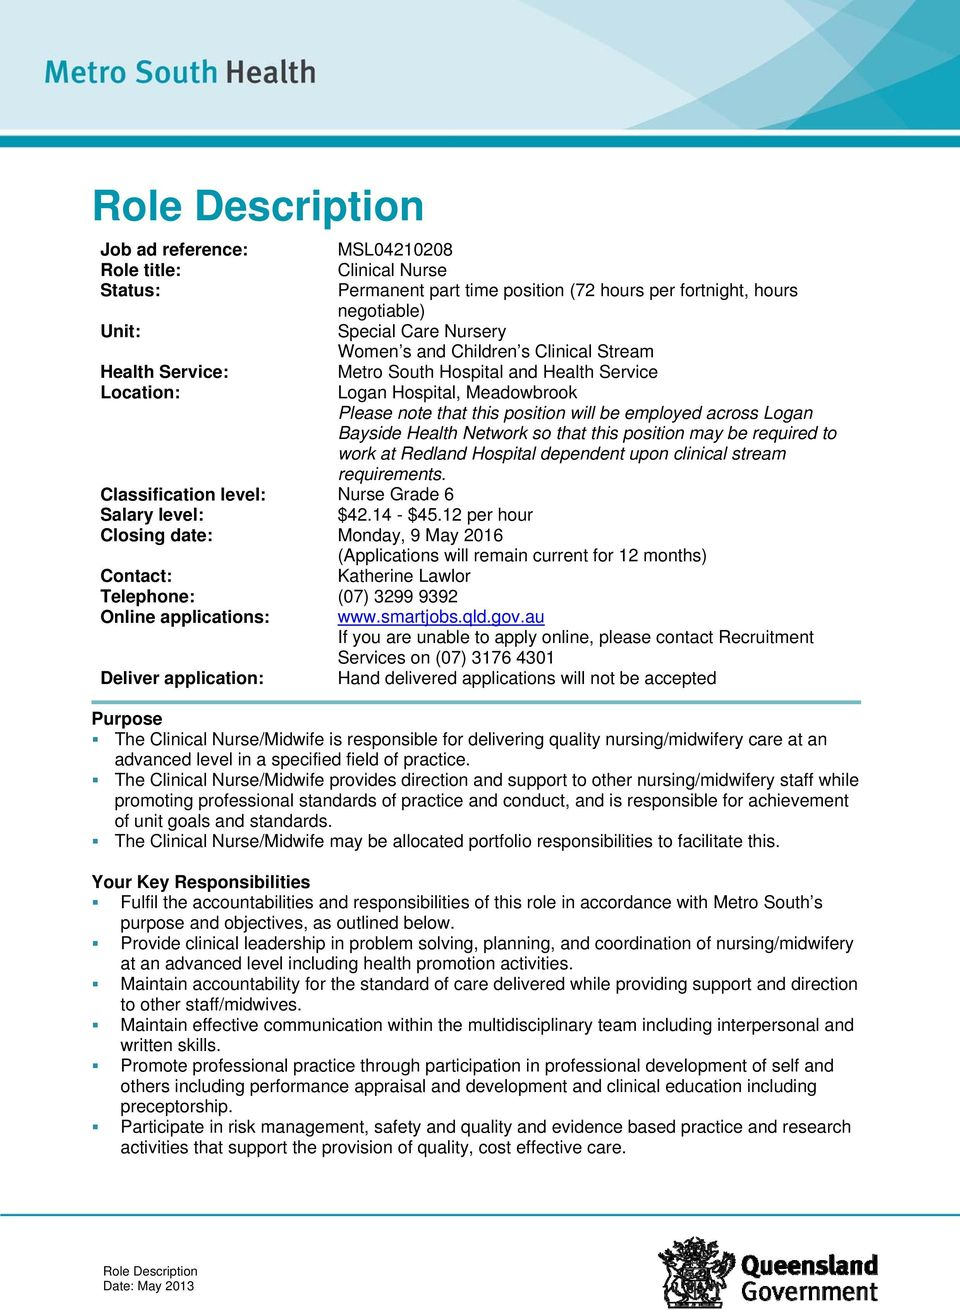 Network so that this position may be required to work at Redland Hospital dependent upon clinical stream requirements. Classification level: Nurse Grade 6 Salary level: $42.14 - $45.